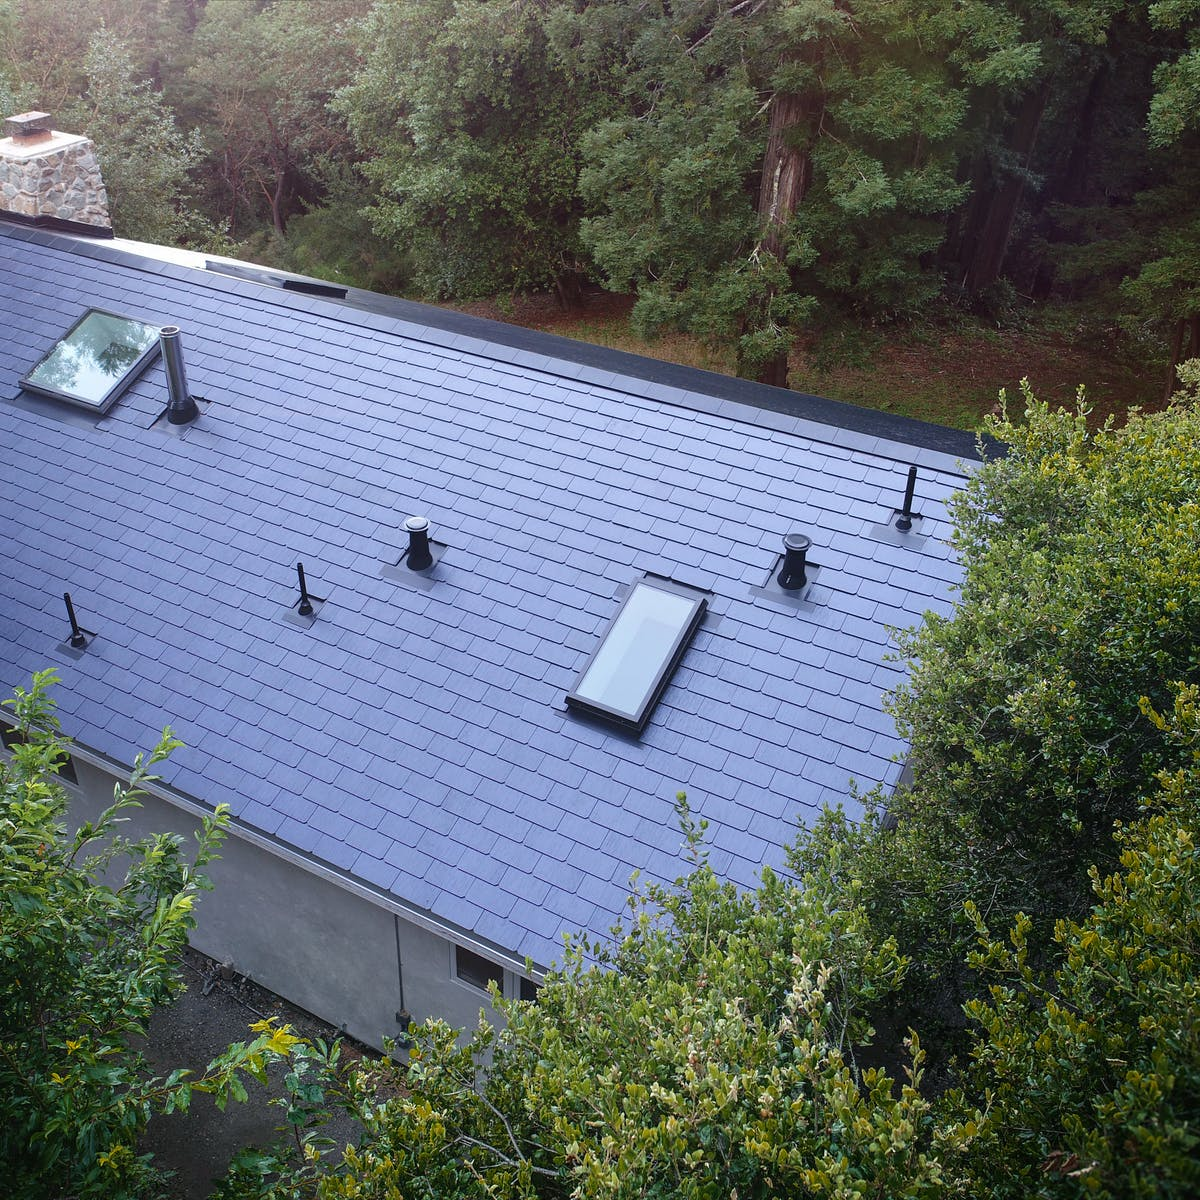 Tesla Solar Roof: 8 Things You Don't Realize Until You Own